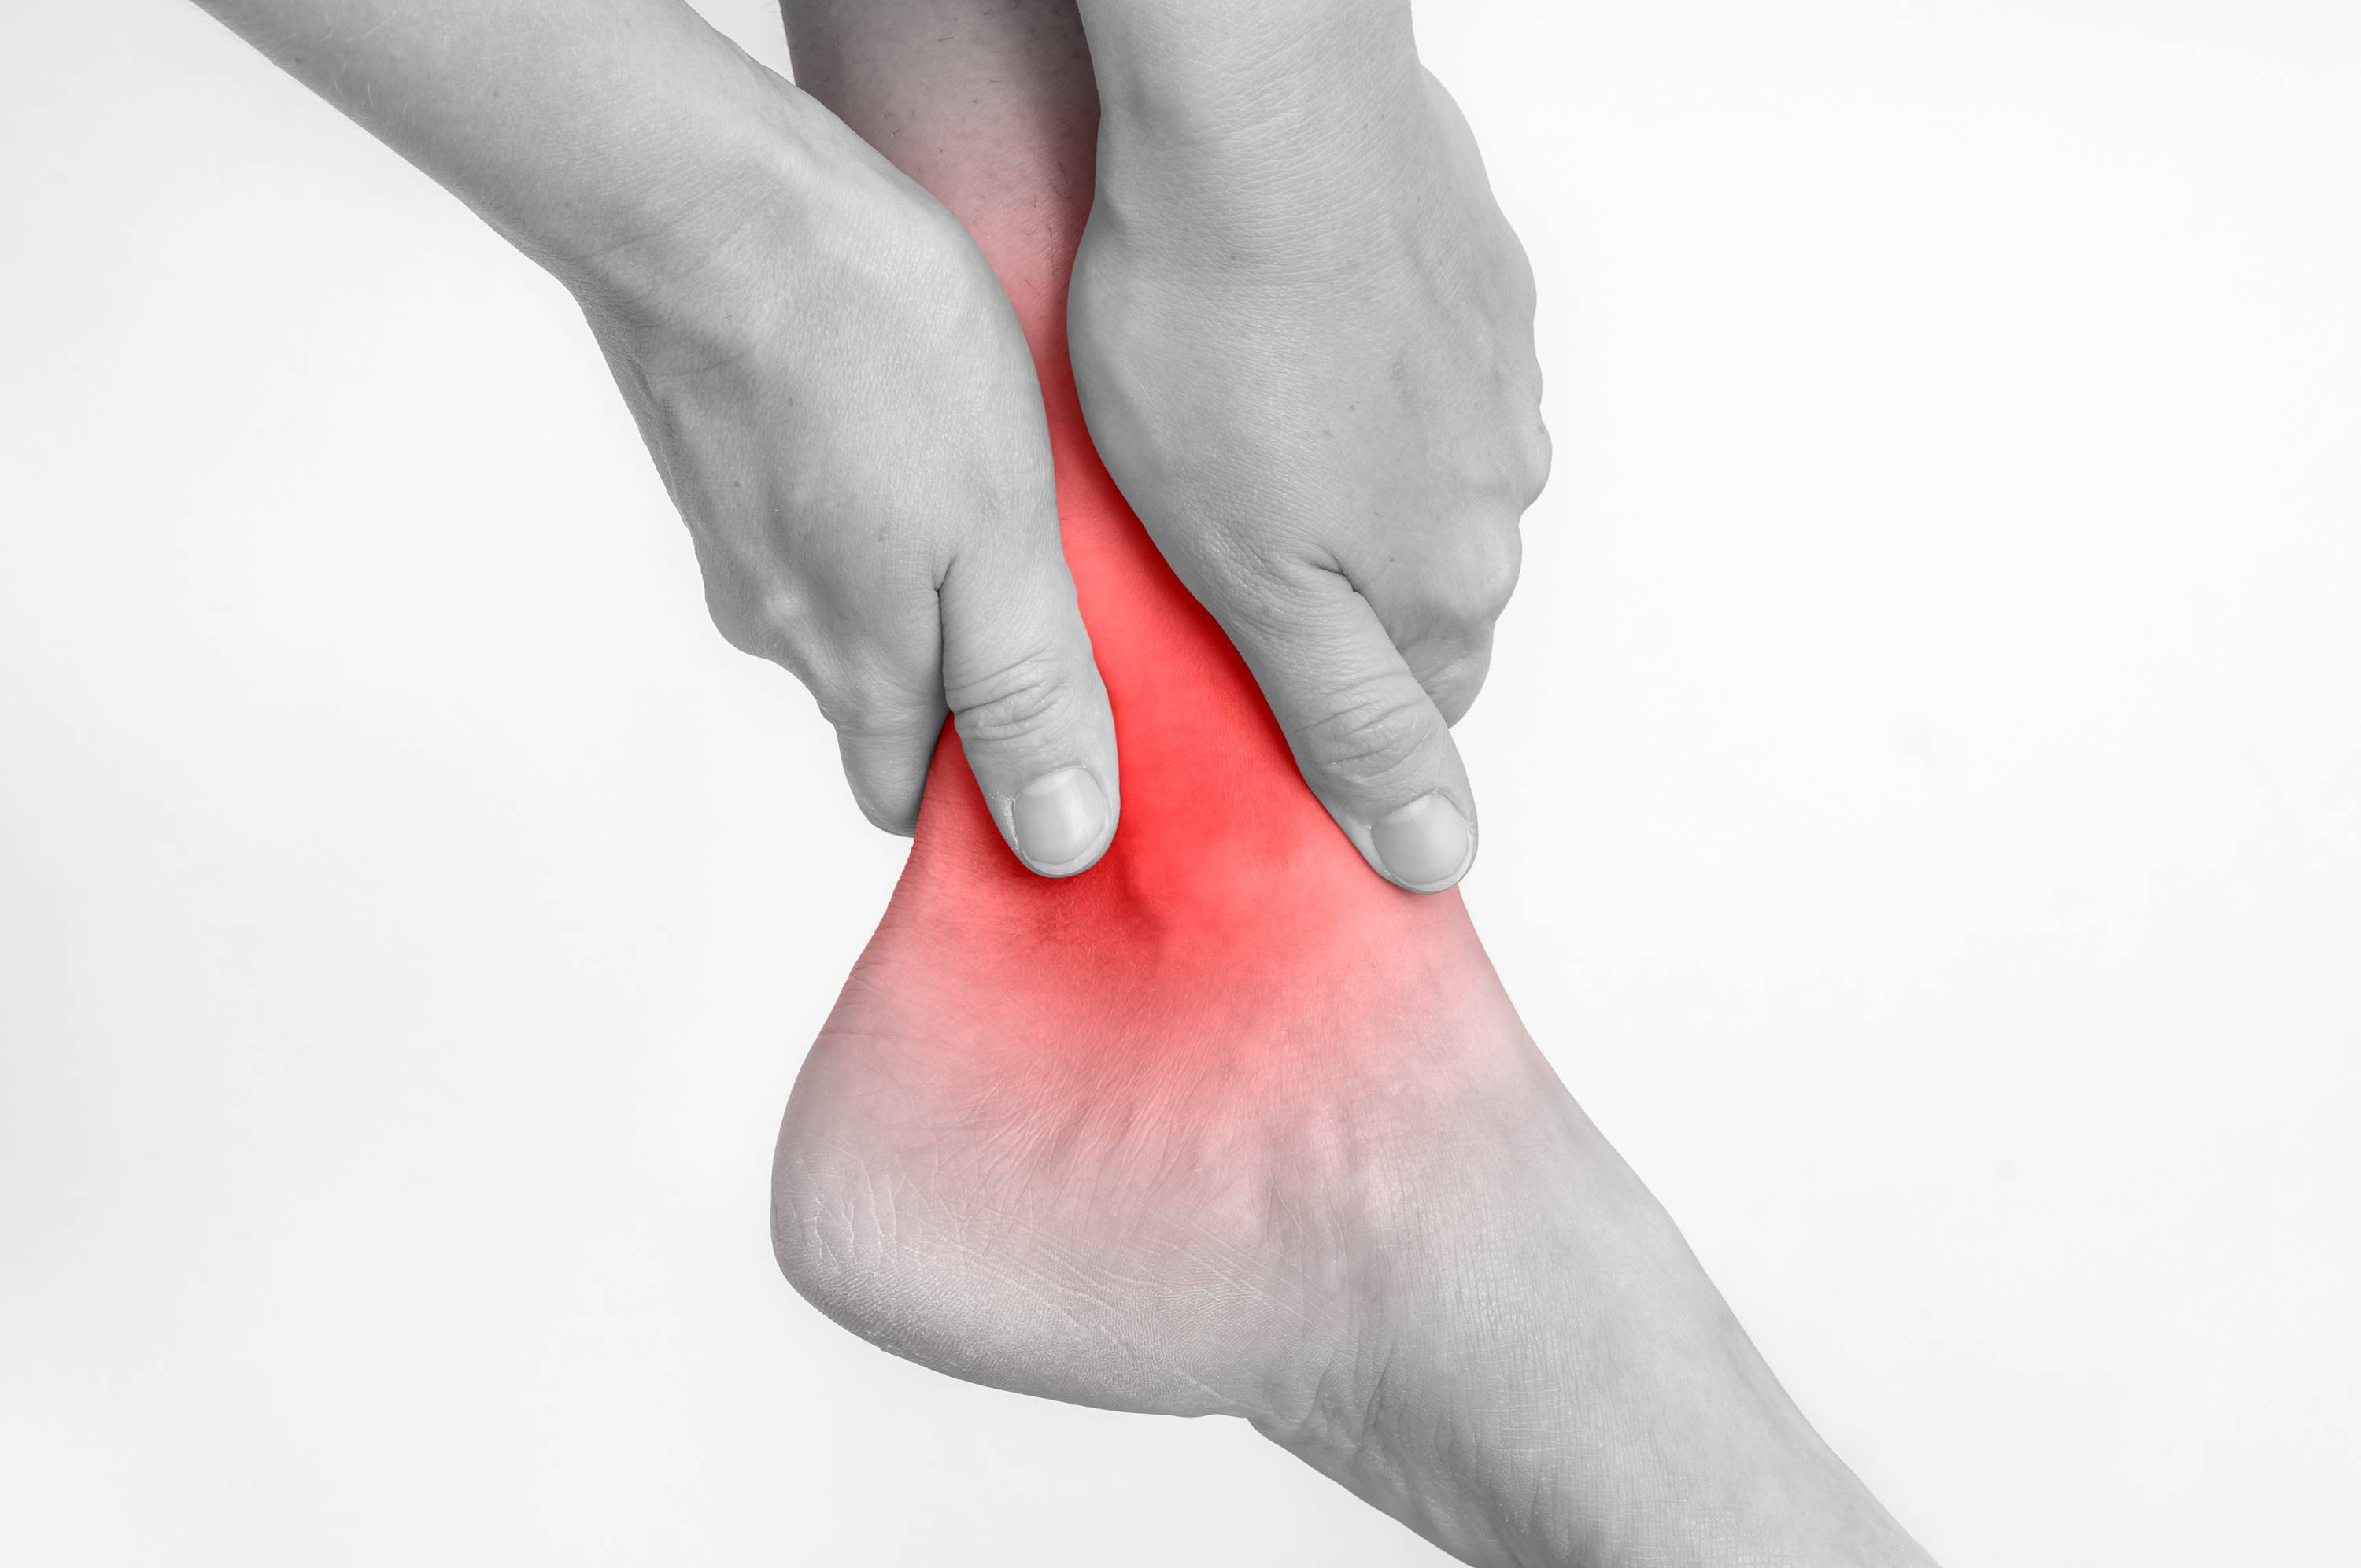 What is an ankle sprain